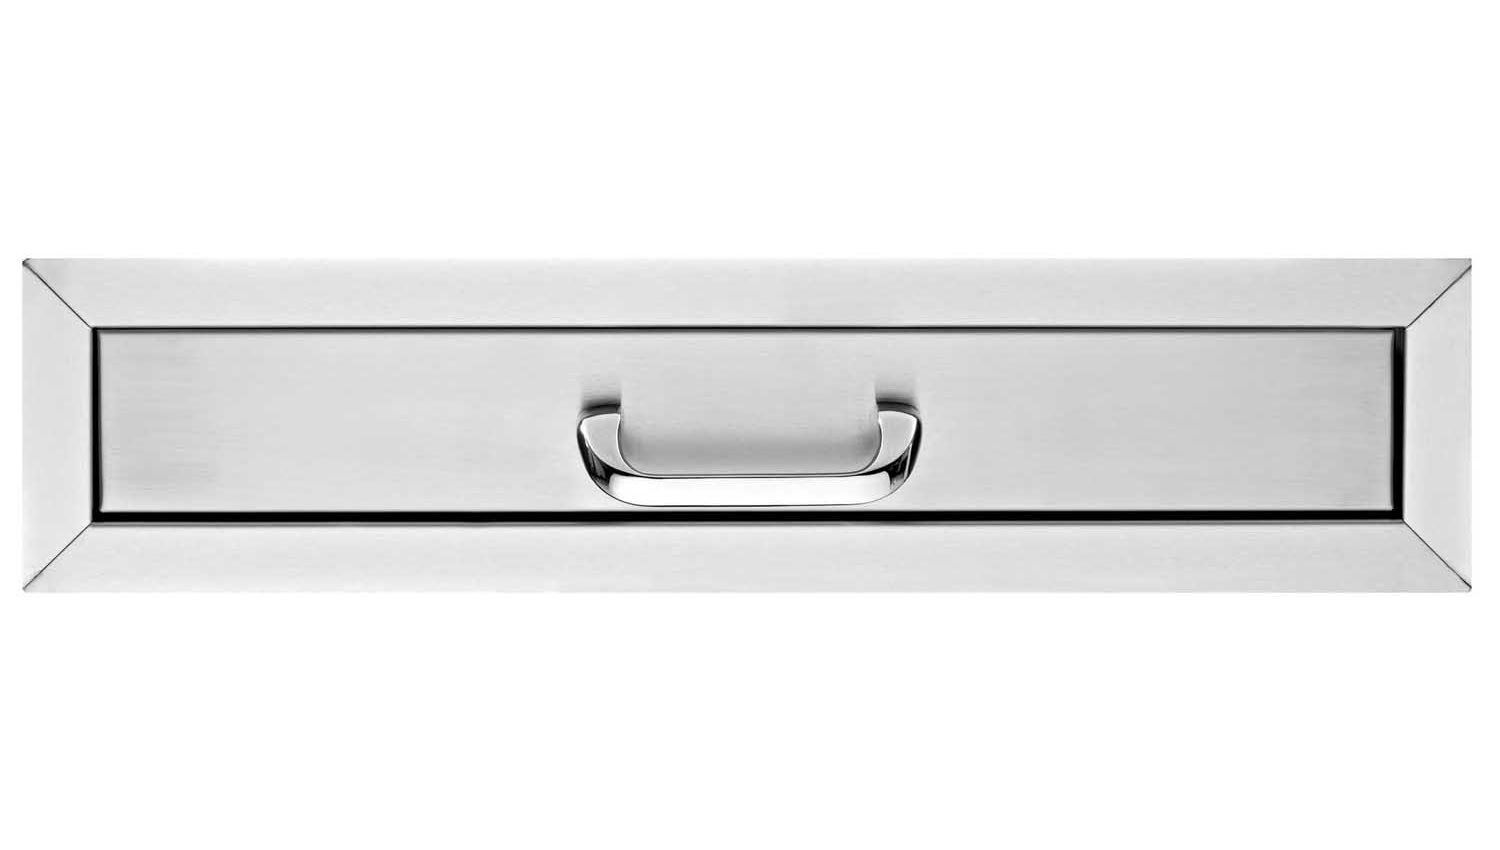 Delsol Single Utensil Drawer (DSUD26), 26-Inch by Delsol